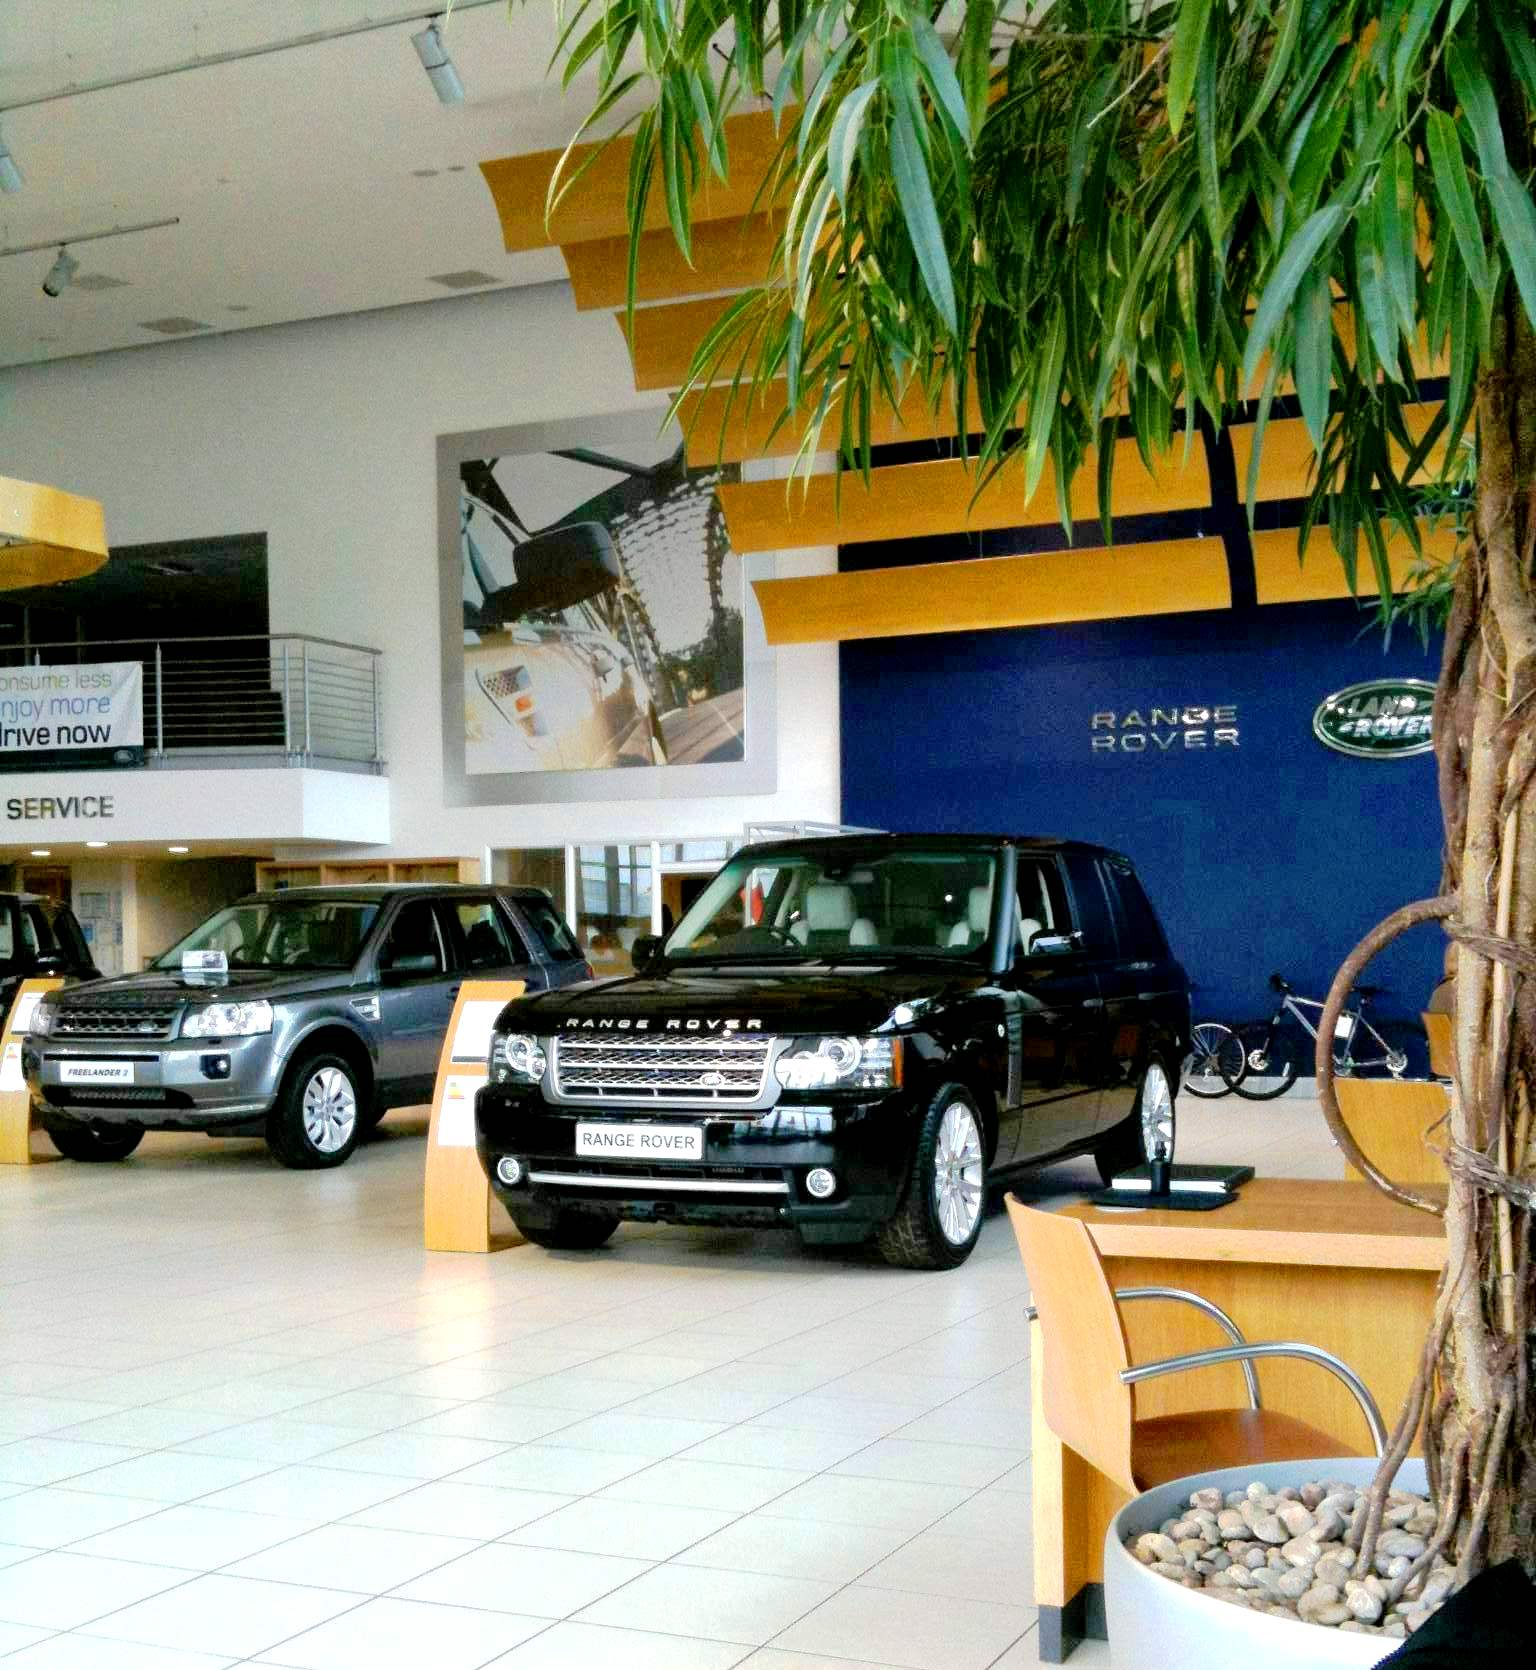 Sacramento California Land Rover Dealership: My Mission; Range Rover Evoque Dealership Inspection